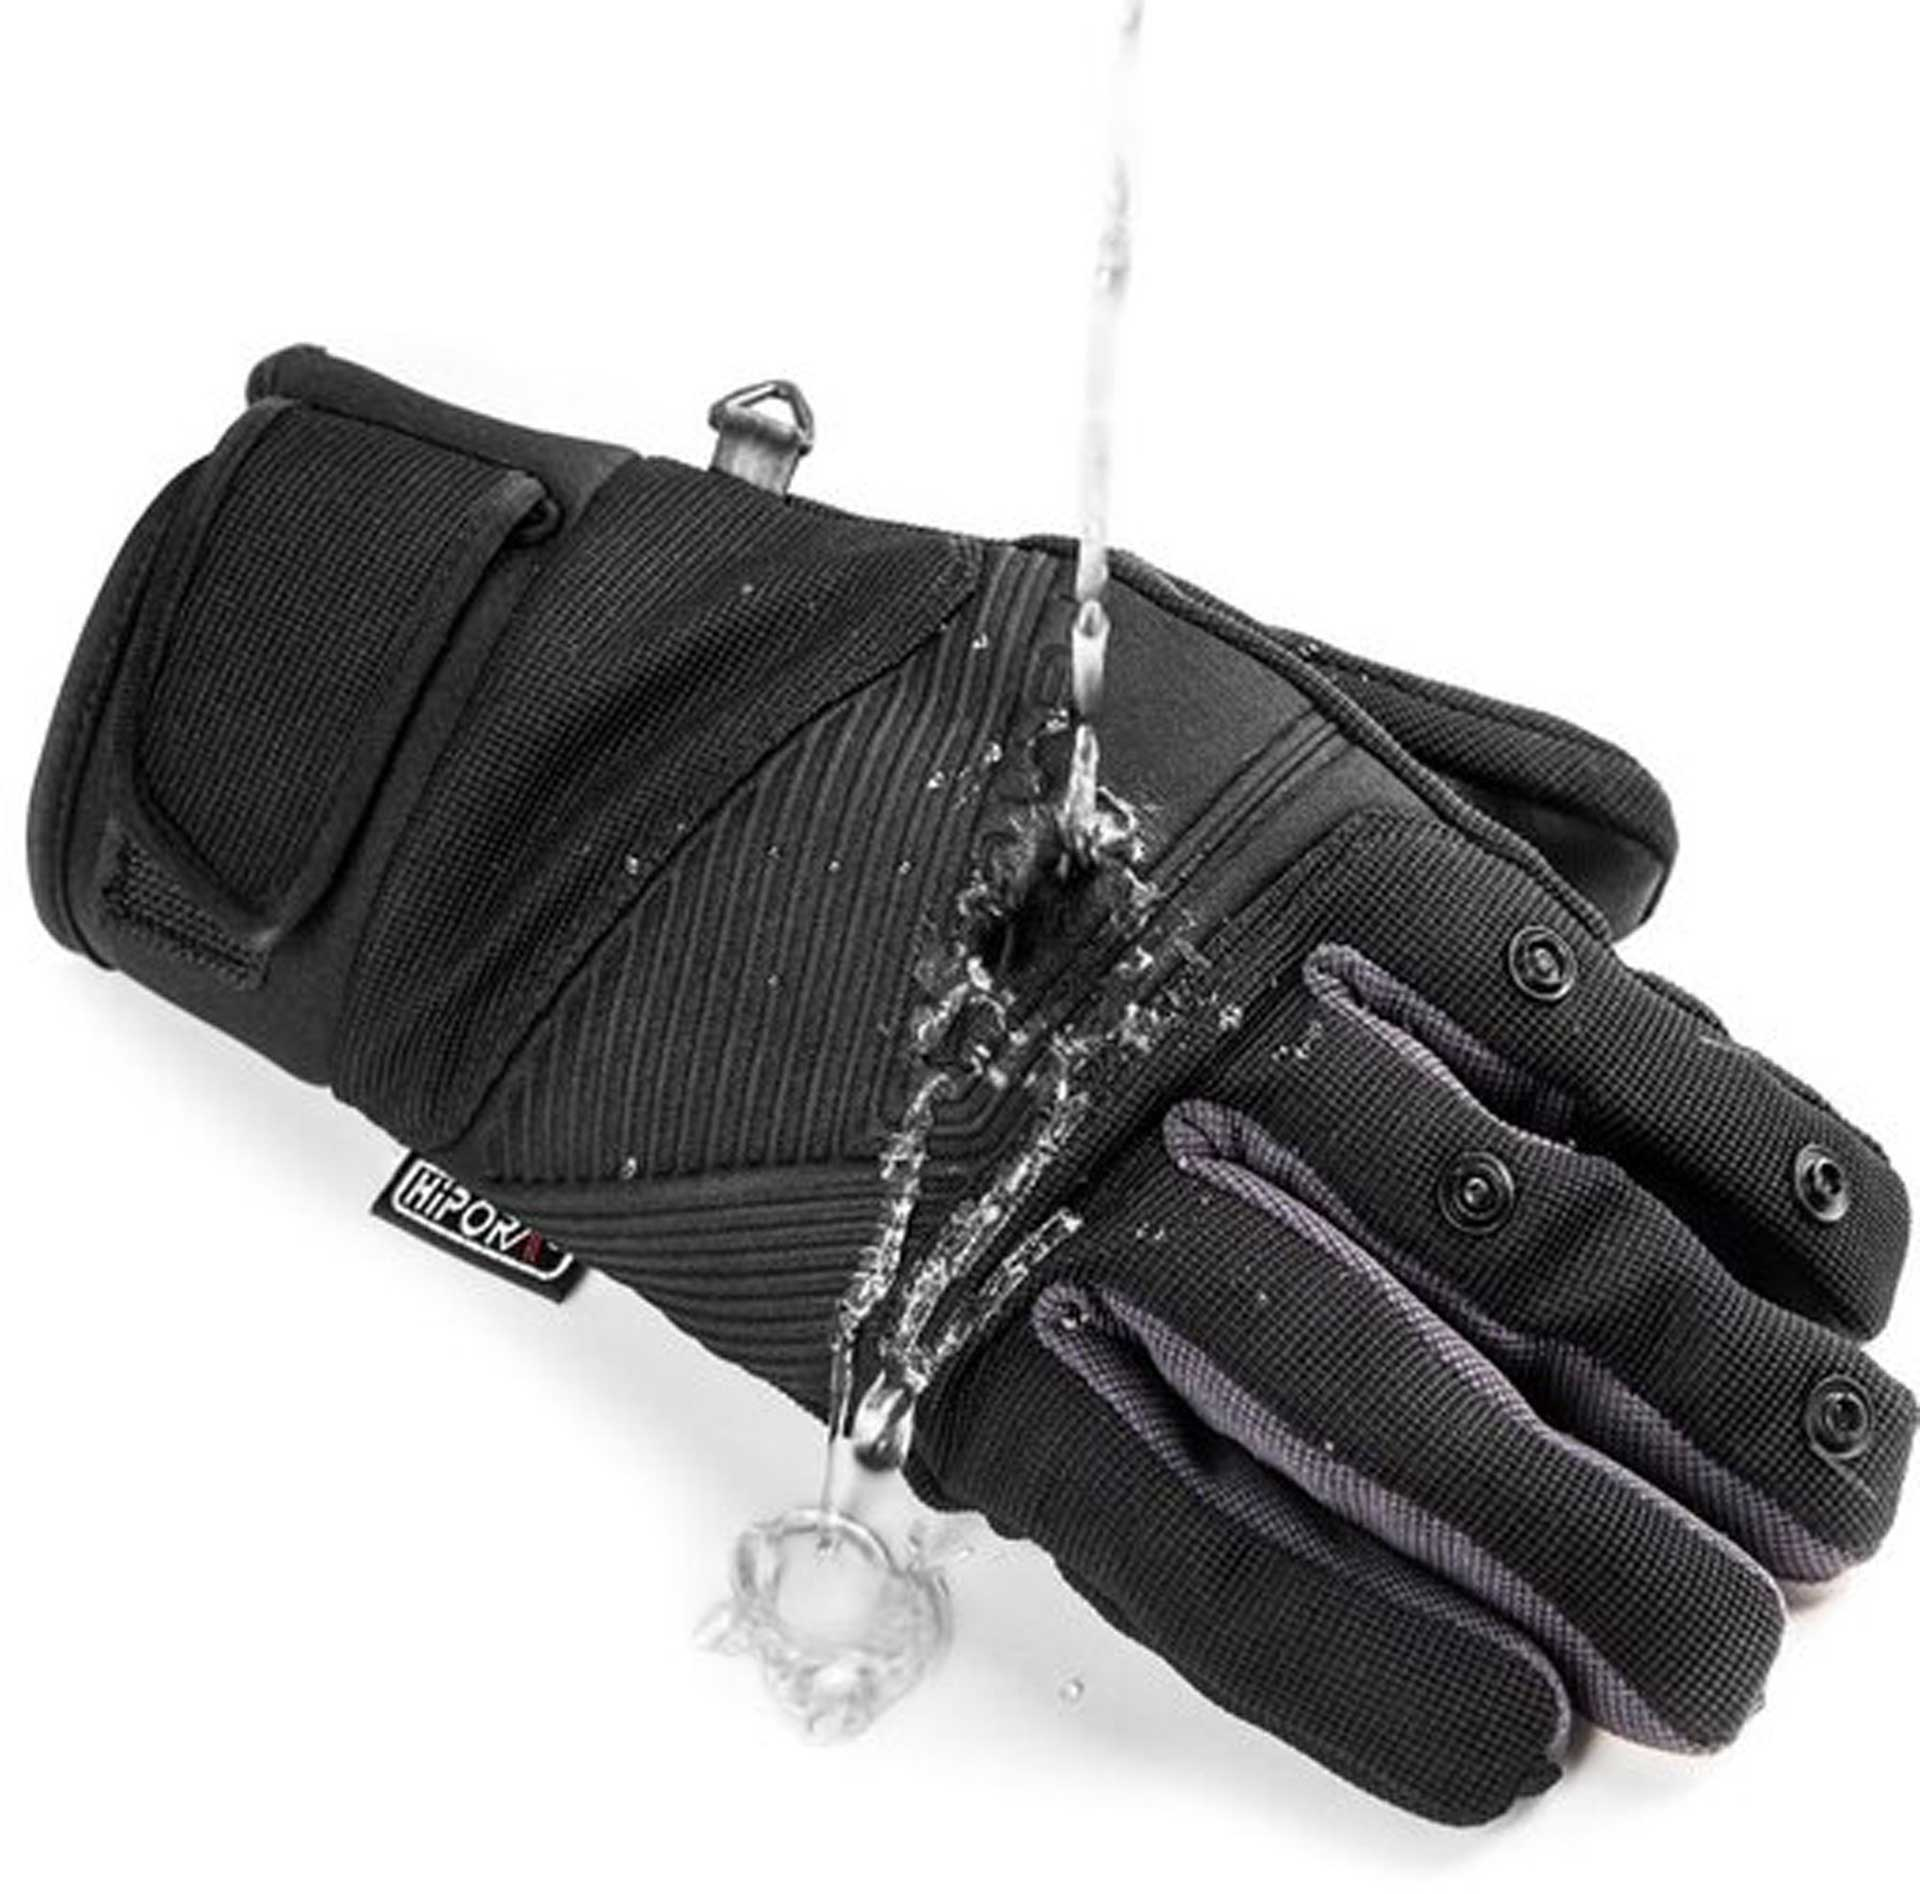 PGYTECH SPECIAL GLOVES X-LARGE